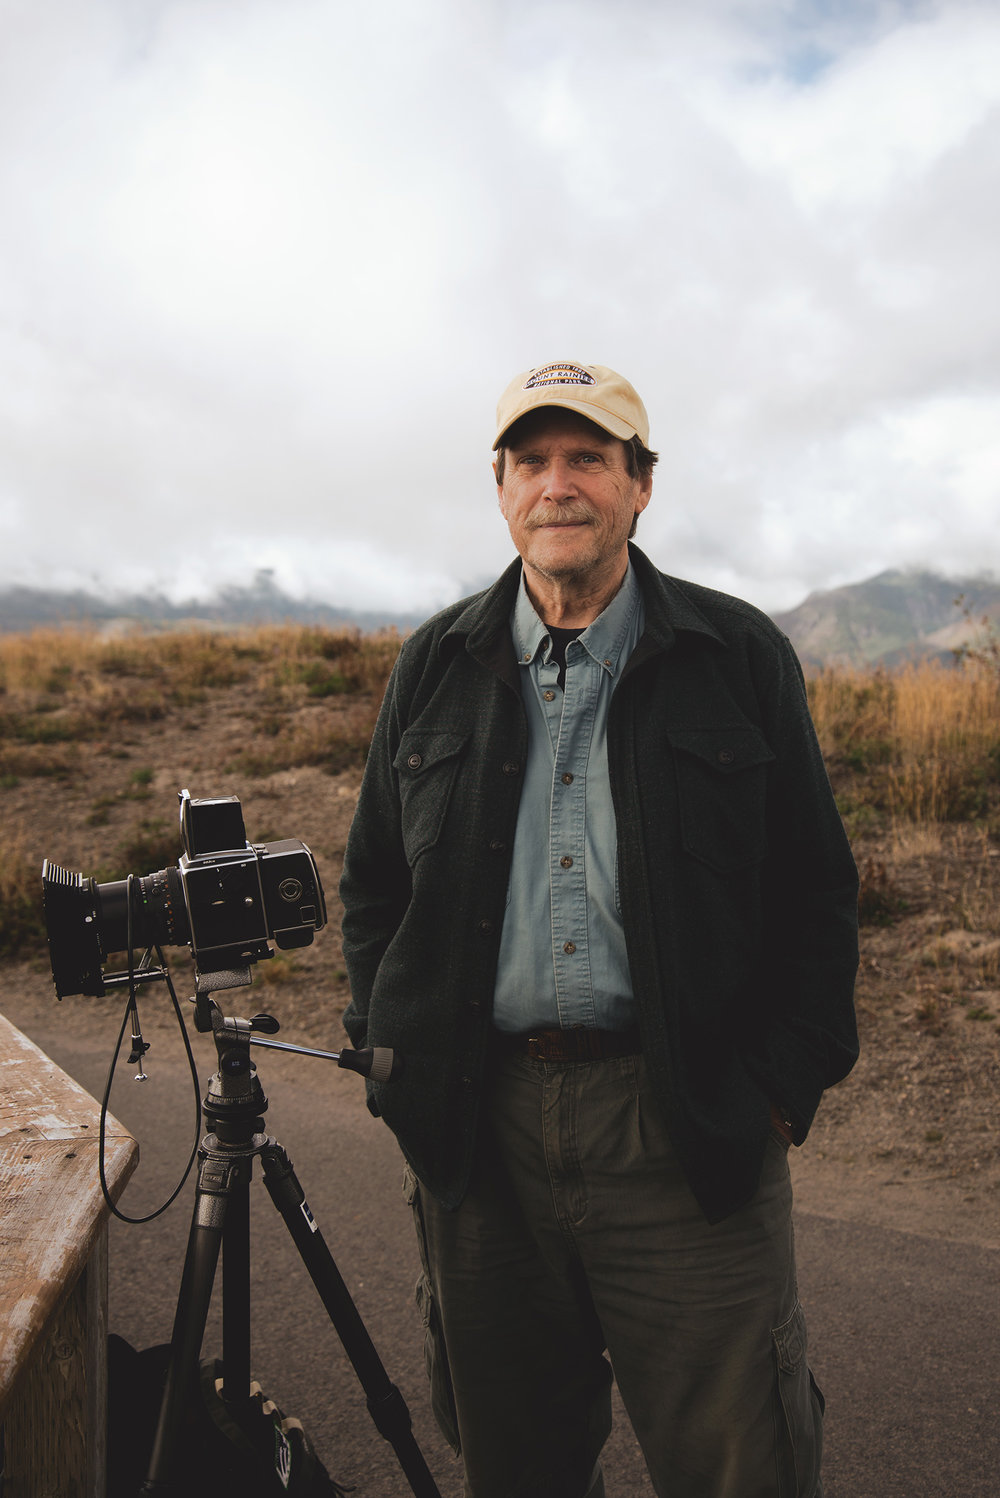 Met this veteran photographer with his digitially converted medium format camera at Mount St. Helens